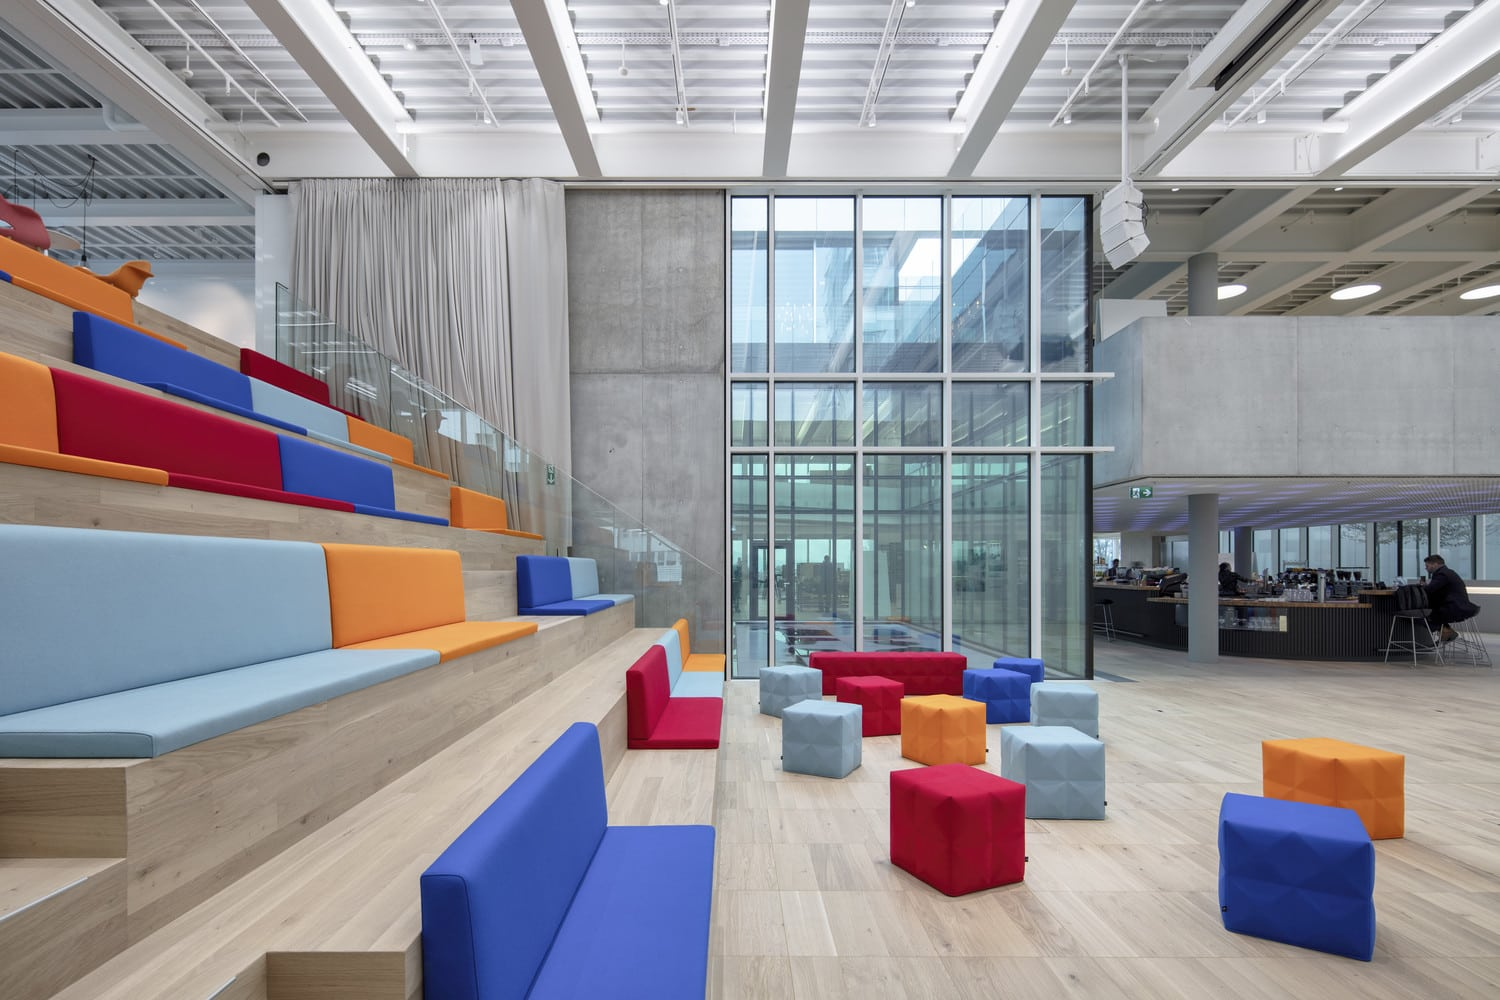 Modern office meeting space with colourful seats and frameless glass walls